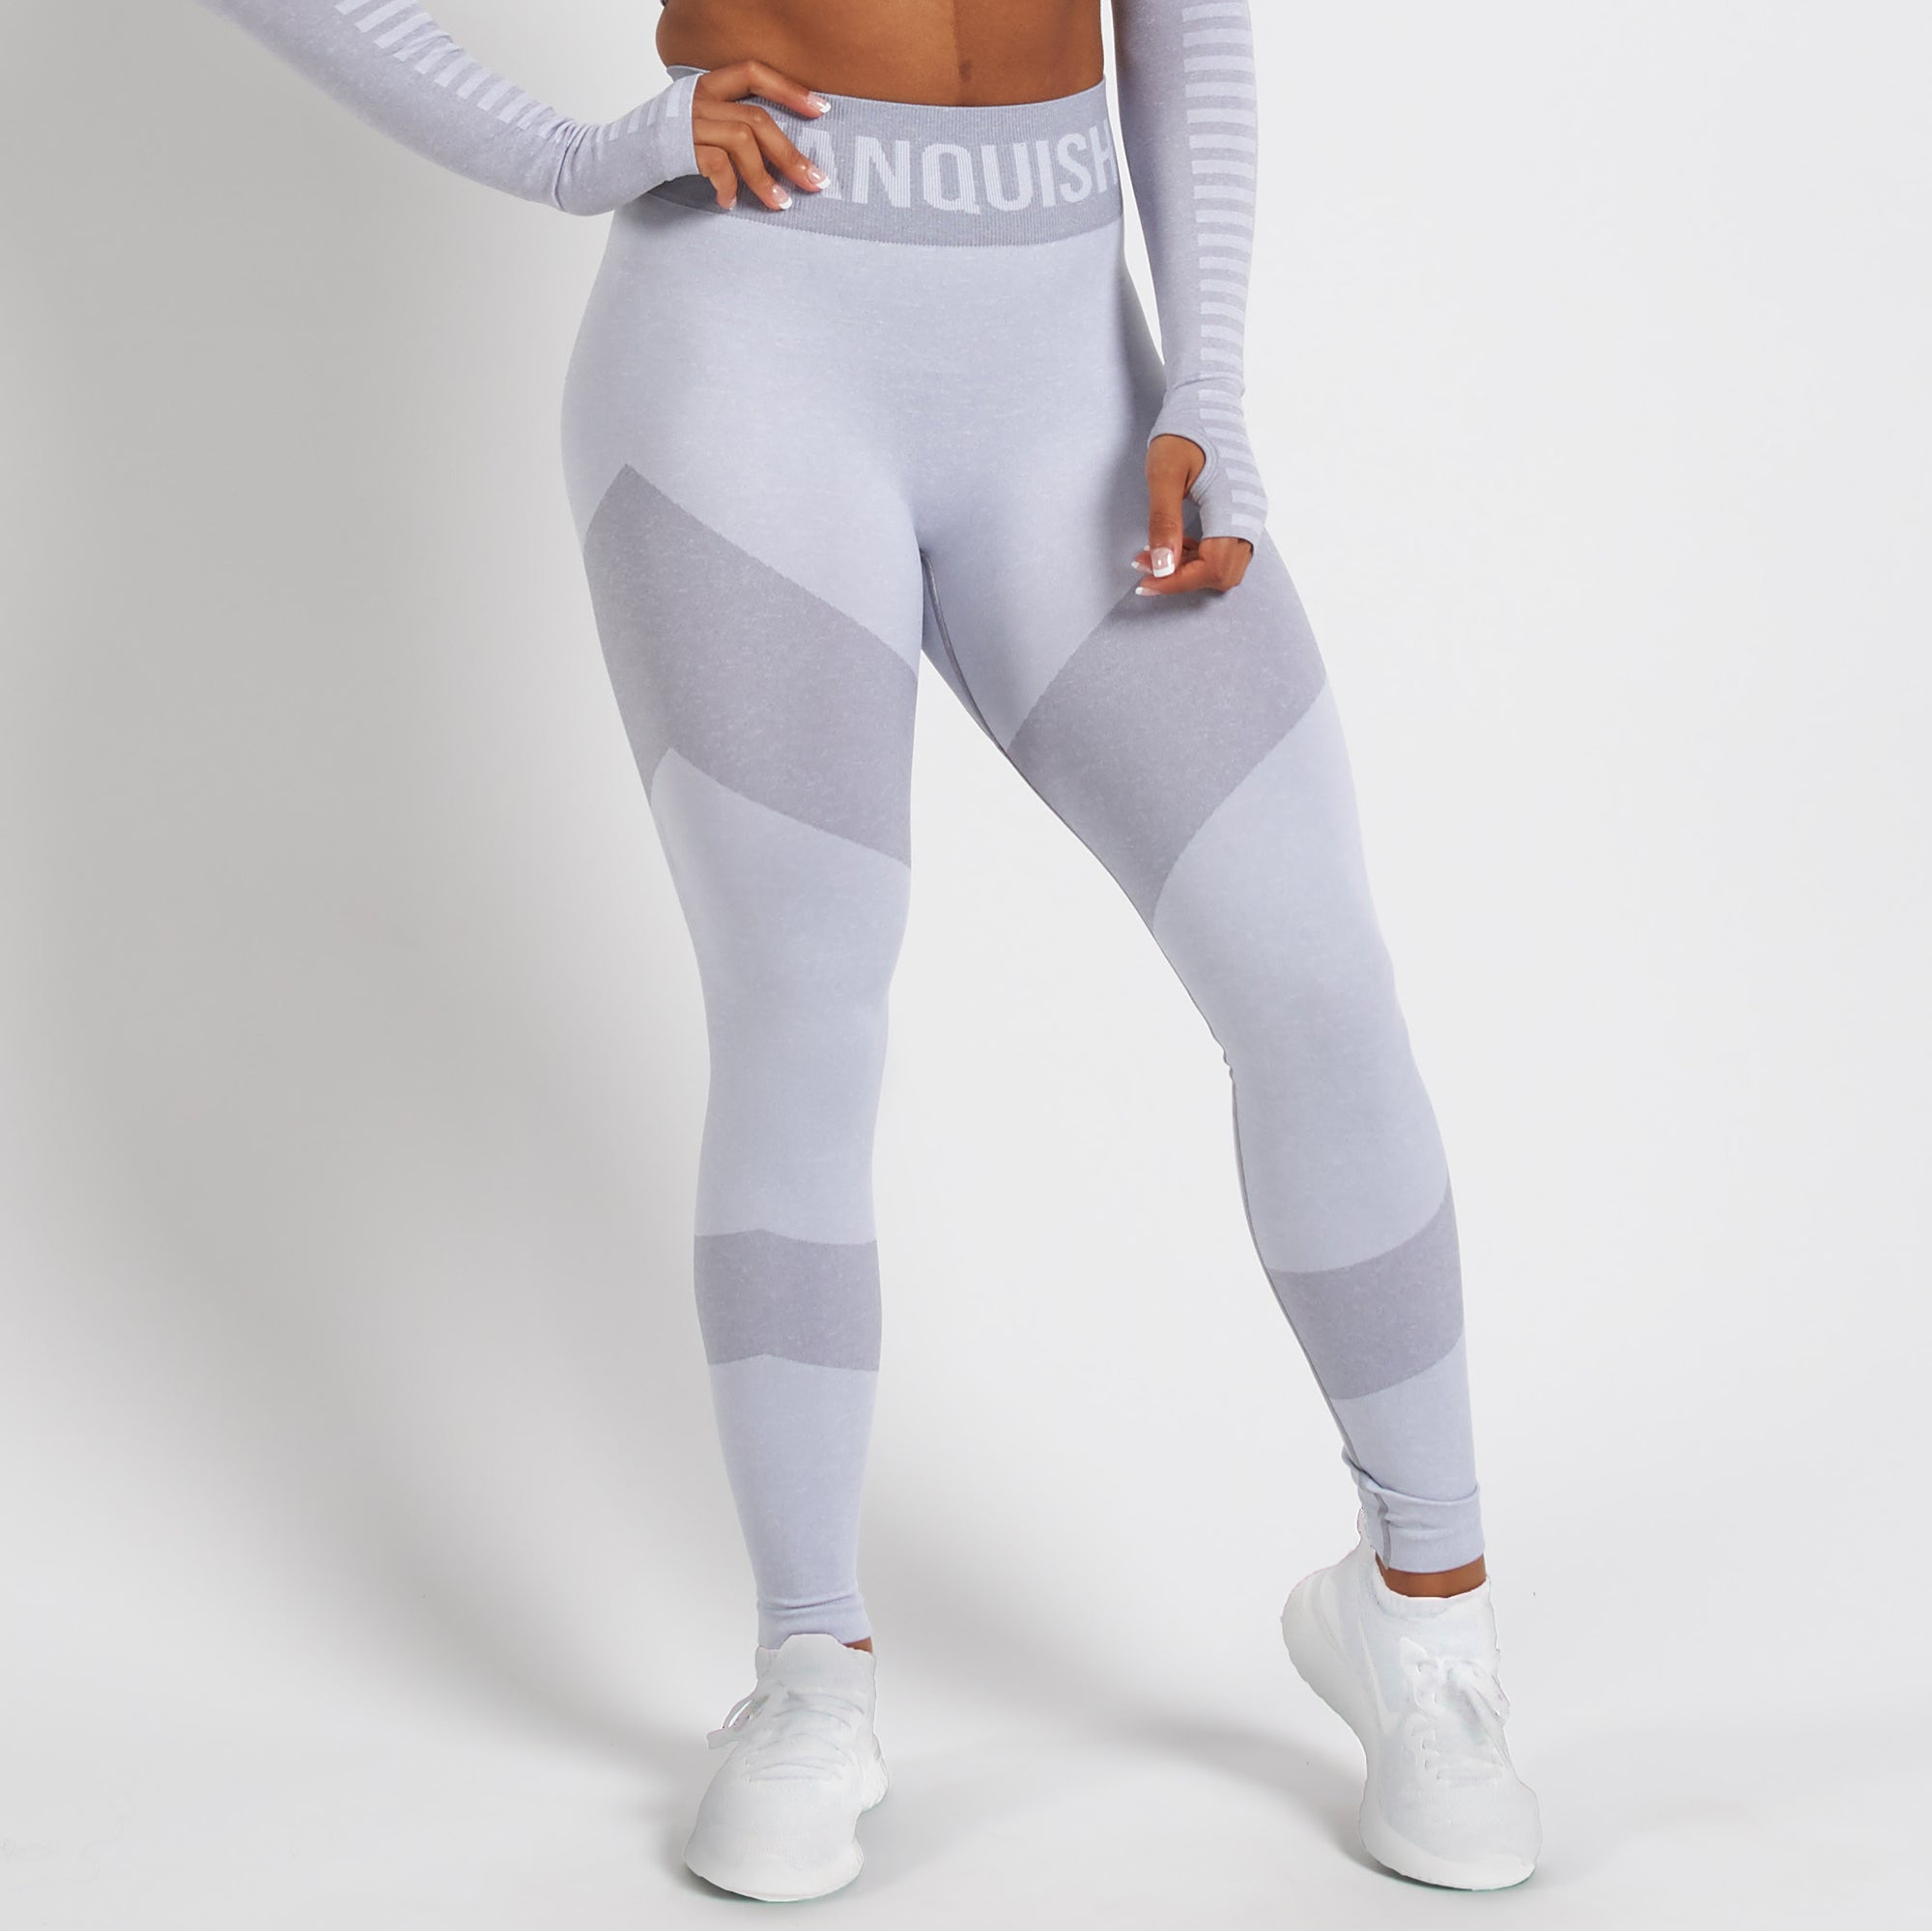 Vanquish Allure Women's White Seamless Leggings